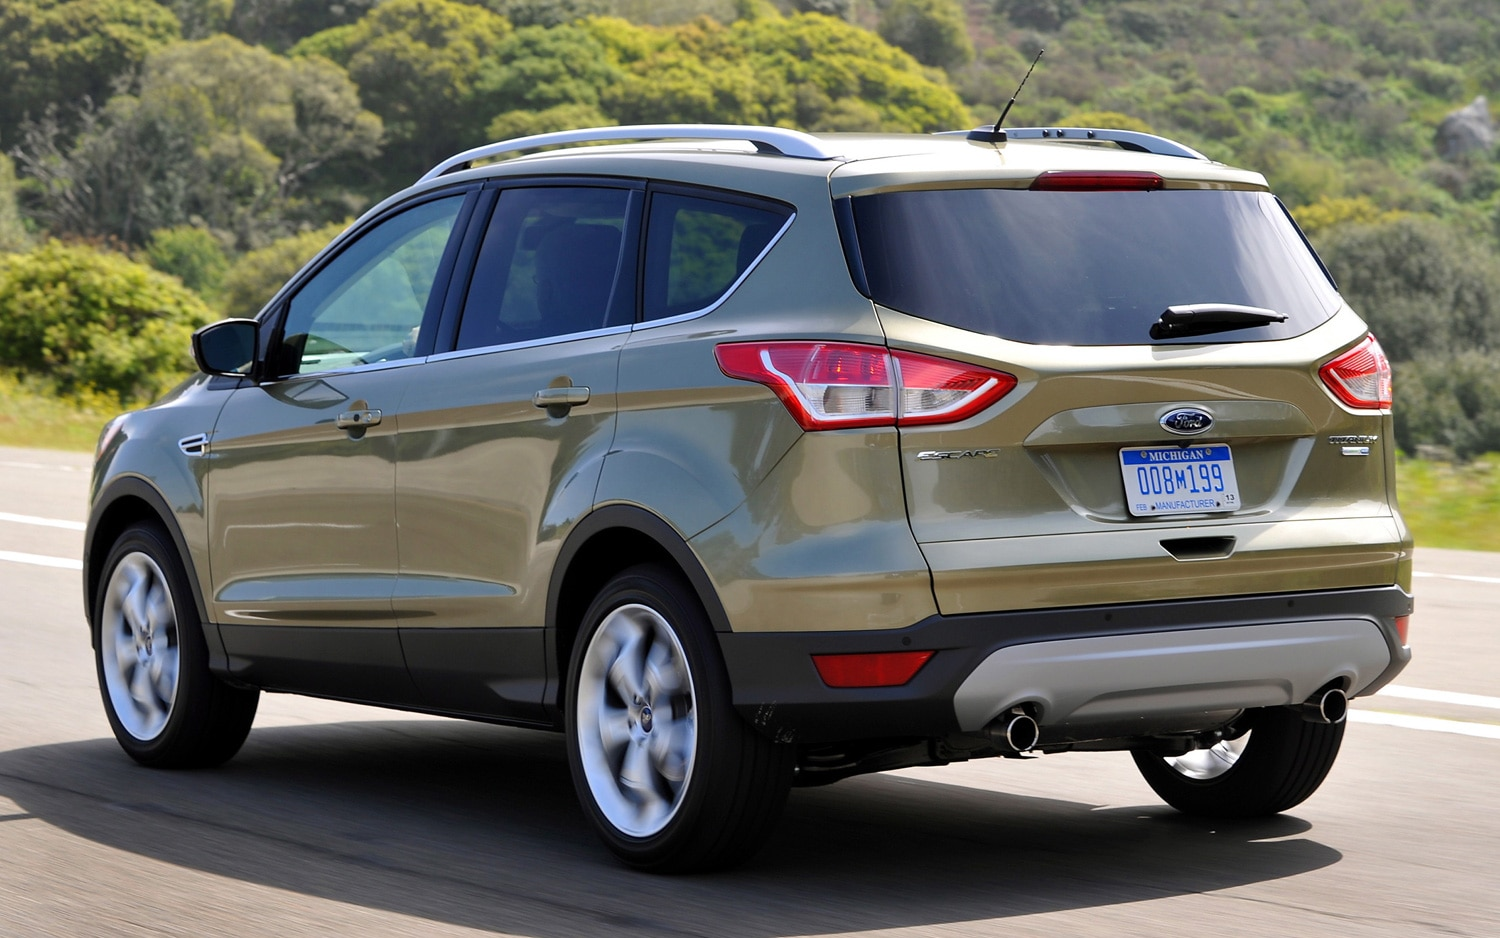 recall central ford recalls 2013 escape ecoboost models over fuel line issues. Black Bedroom Furniture Sets. Home Design Ideas